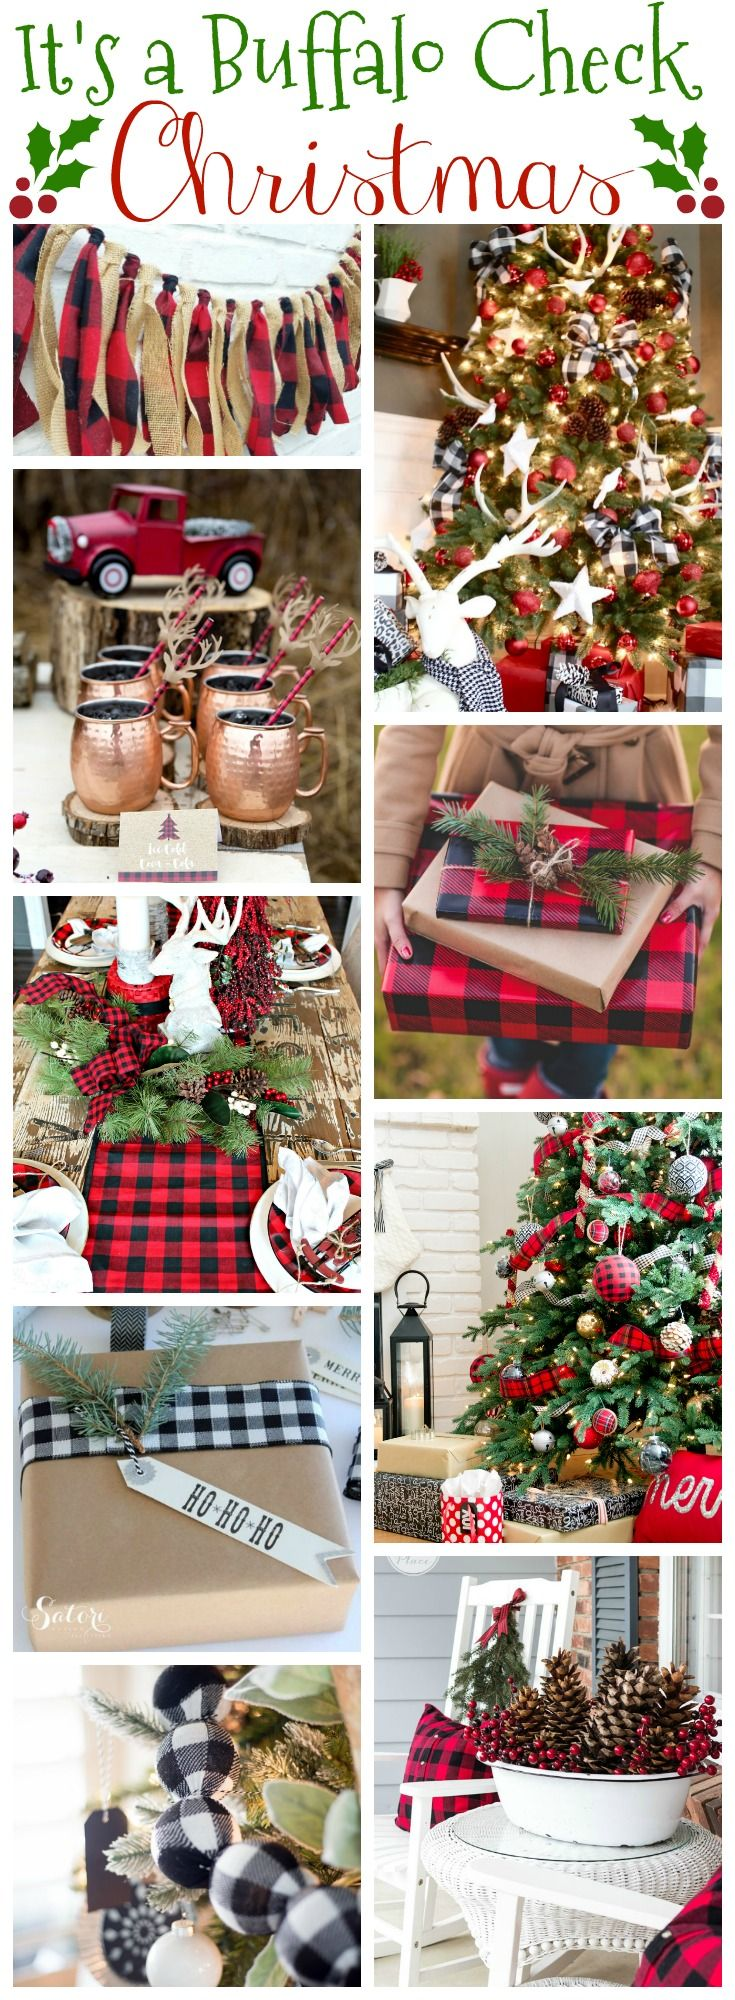 Buffalo Check Christmas Decor & Wrap Ideas